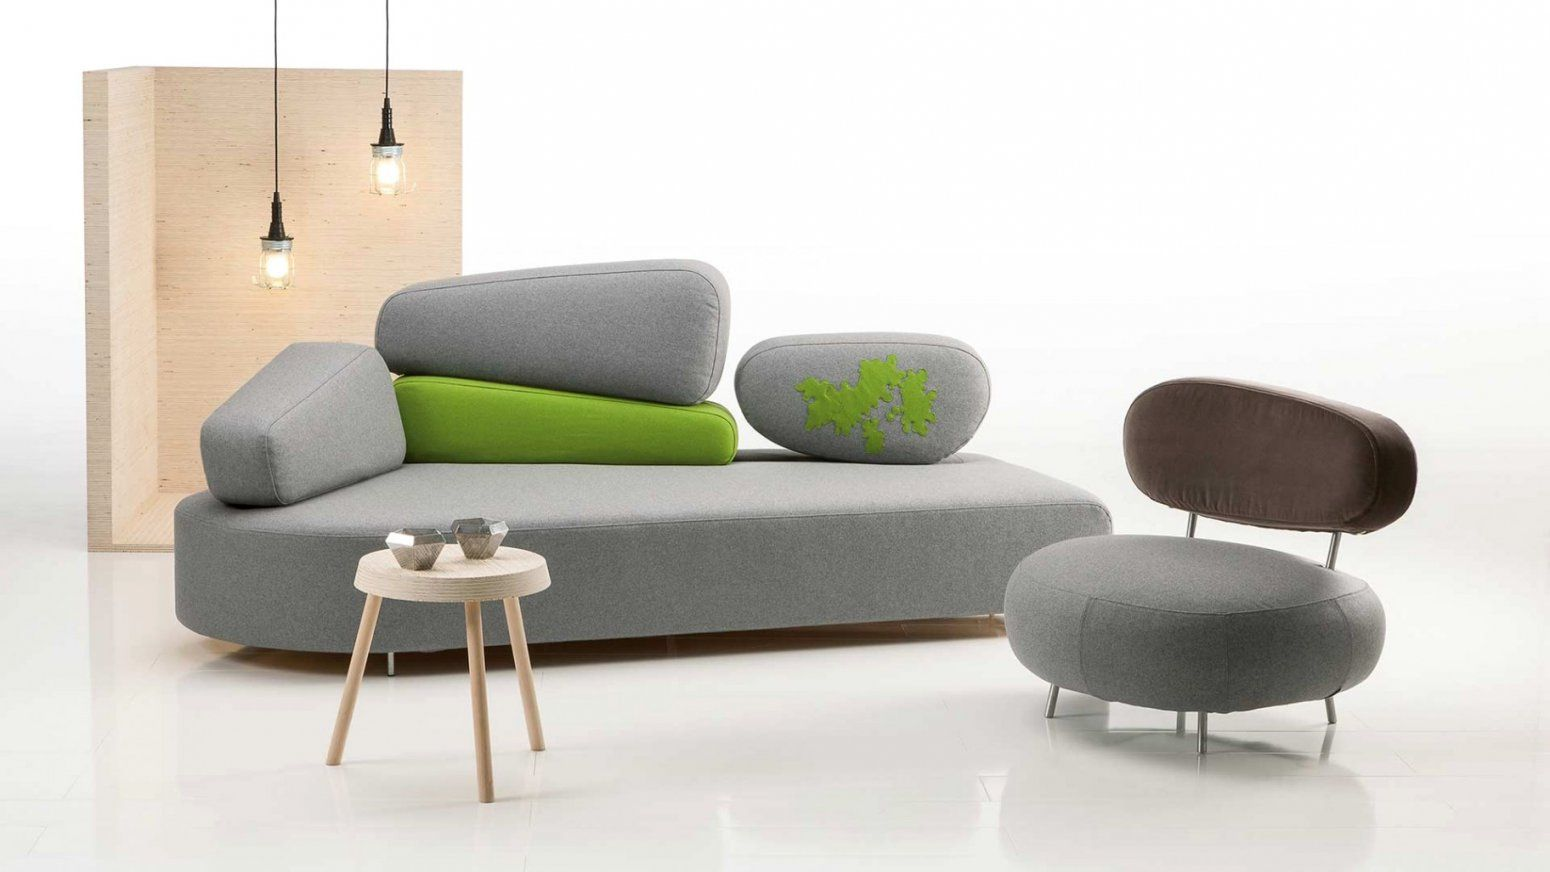 moderne sofas f r kleine r ume haus design ideen. Black Bedroom Furniture Sets. Home Design Ideas